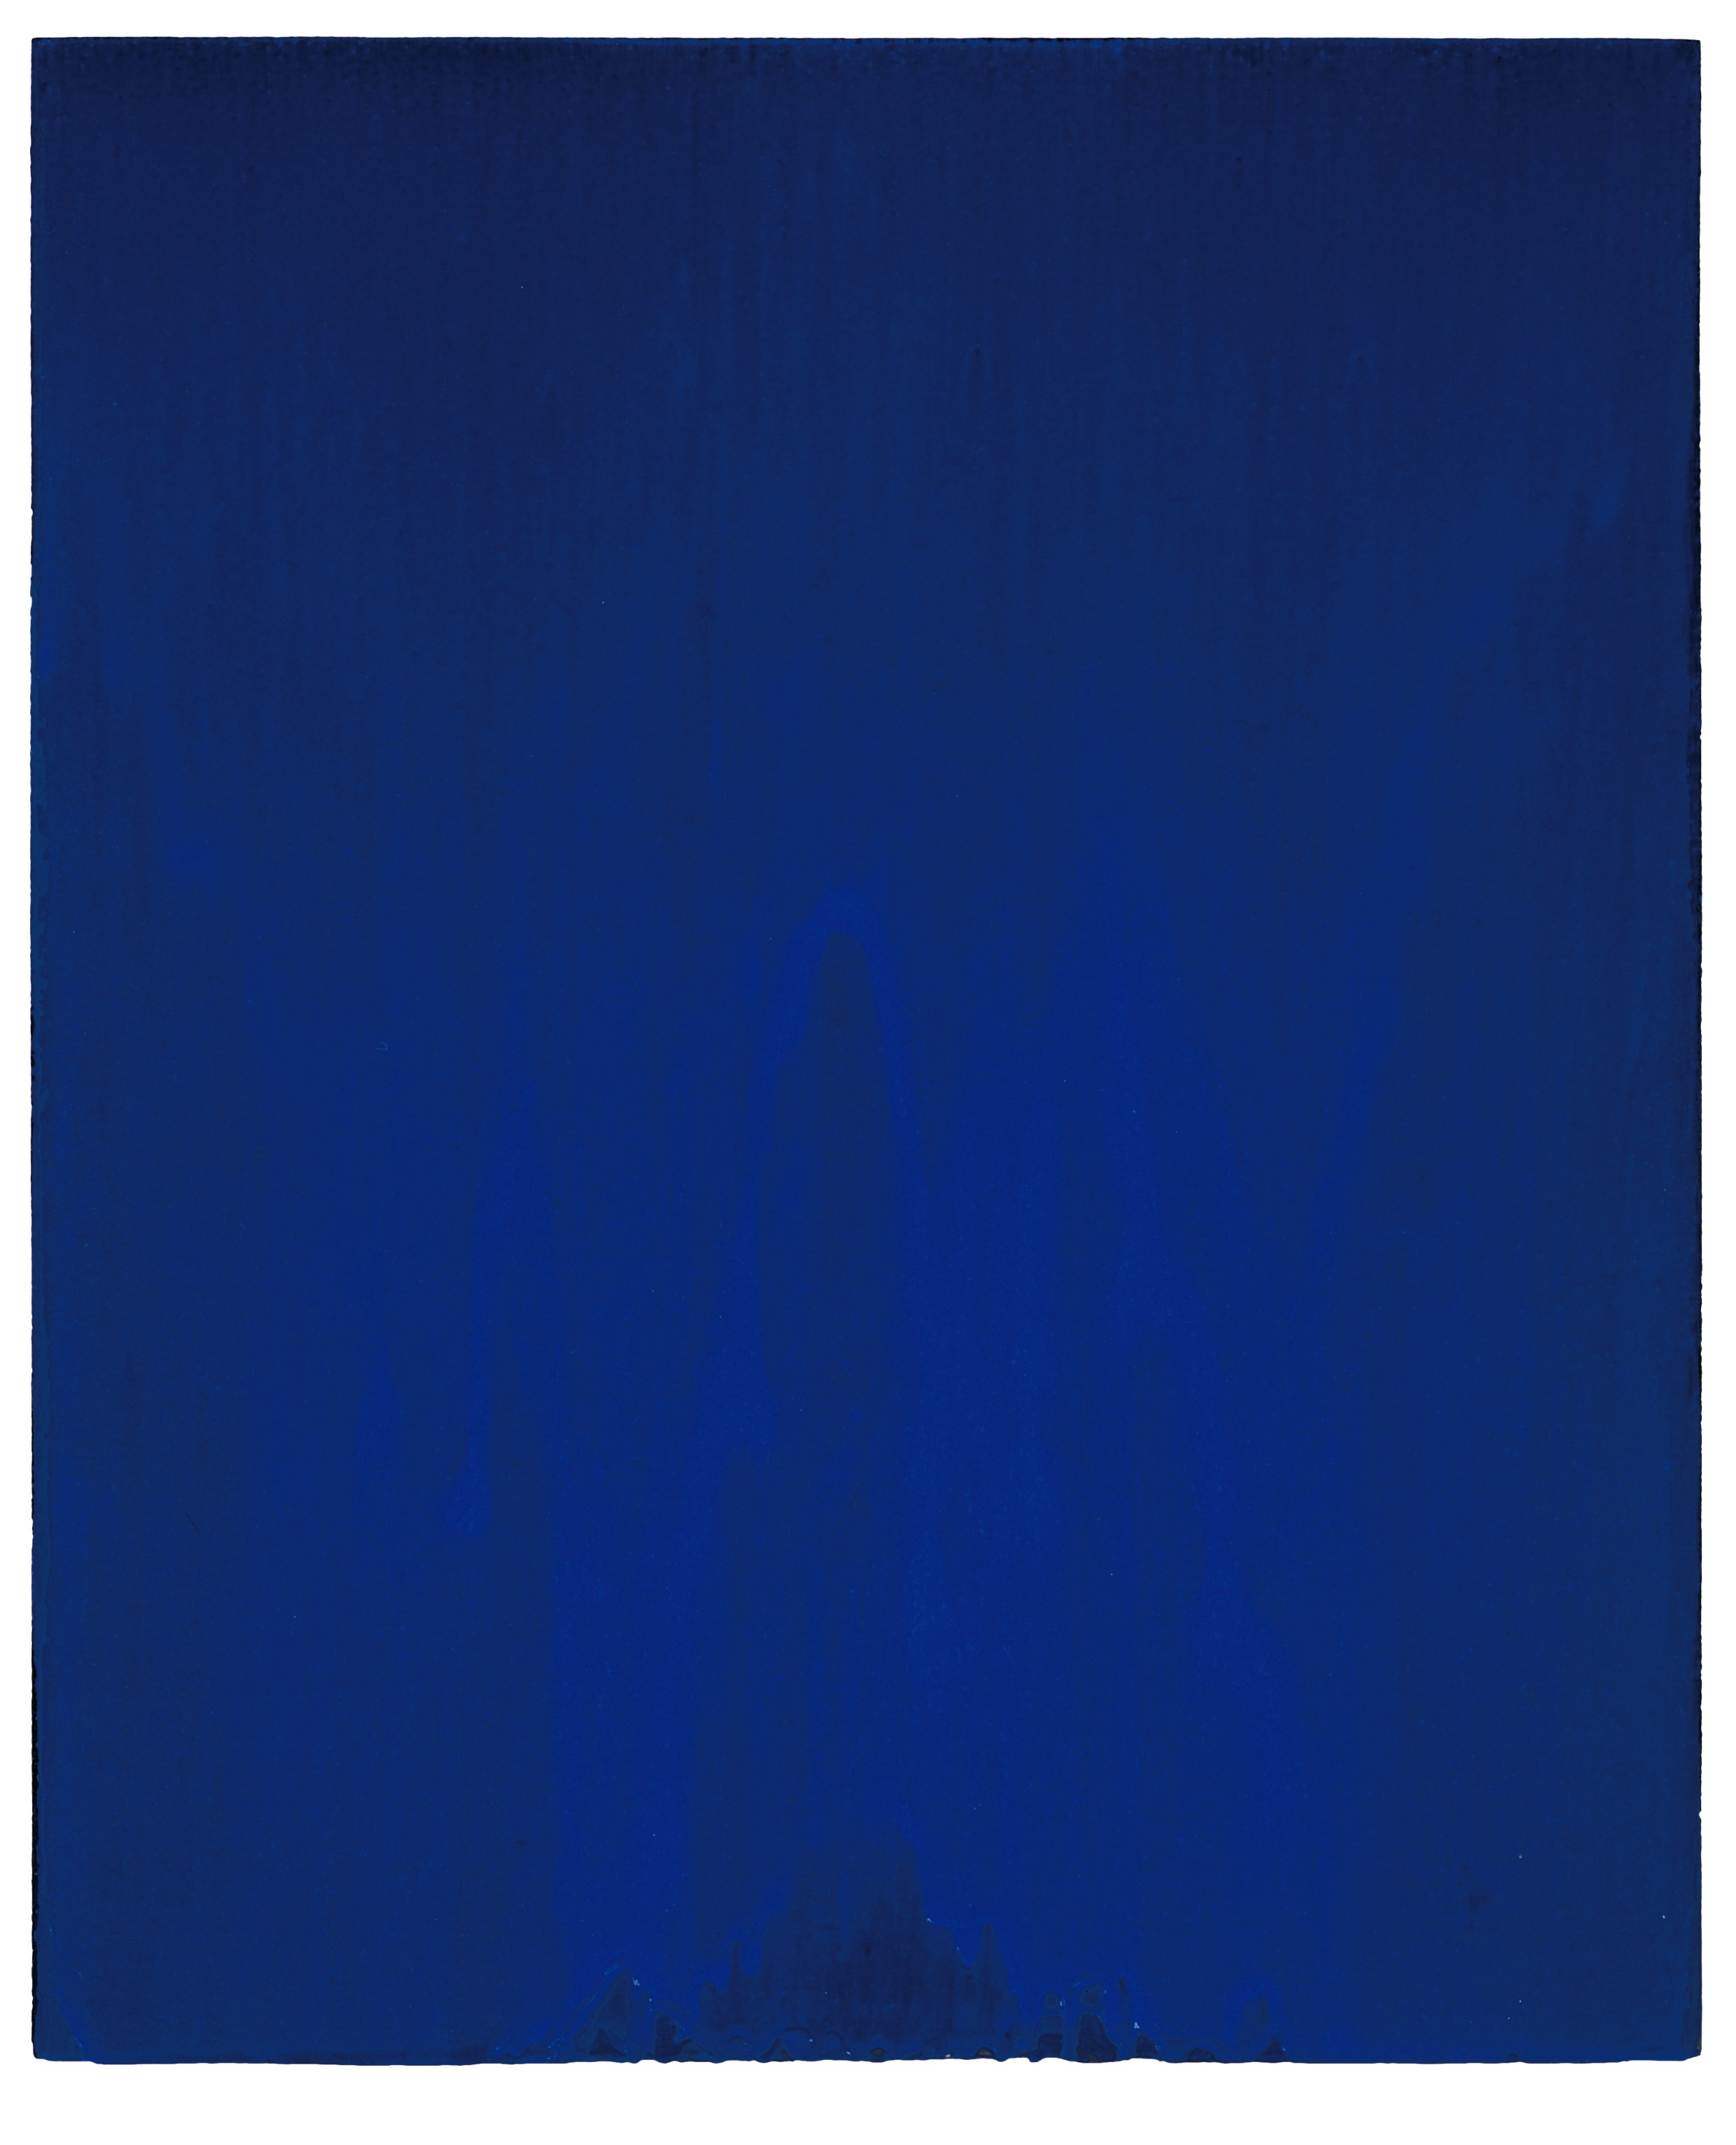 Blue Painting #8